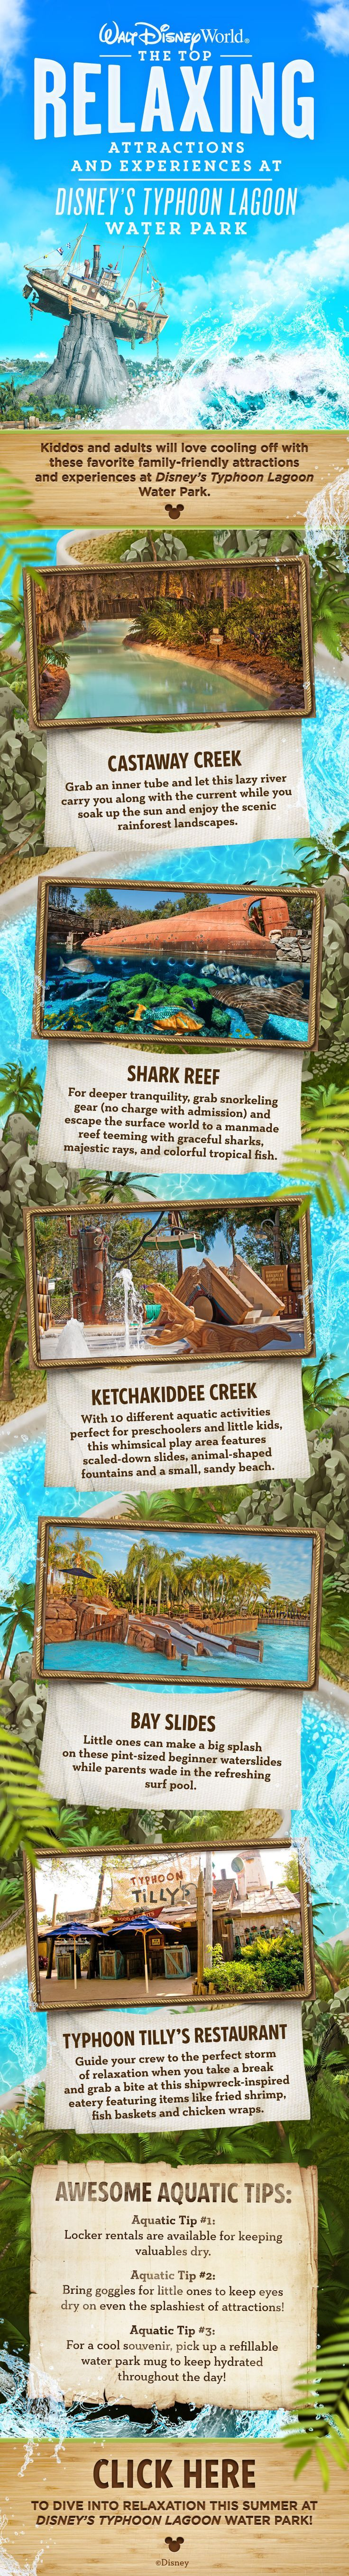 You entire family will love cooling off with these family-friendly attractions at Disney's Typhoon Lagoon Water Park at Walt Disney World! Also, check out a few tips for making the most of your water park experience during your vacation!